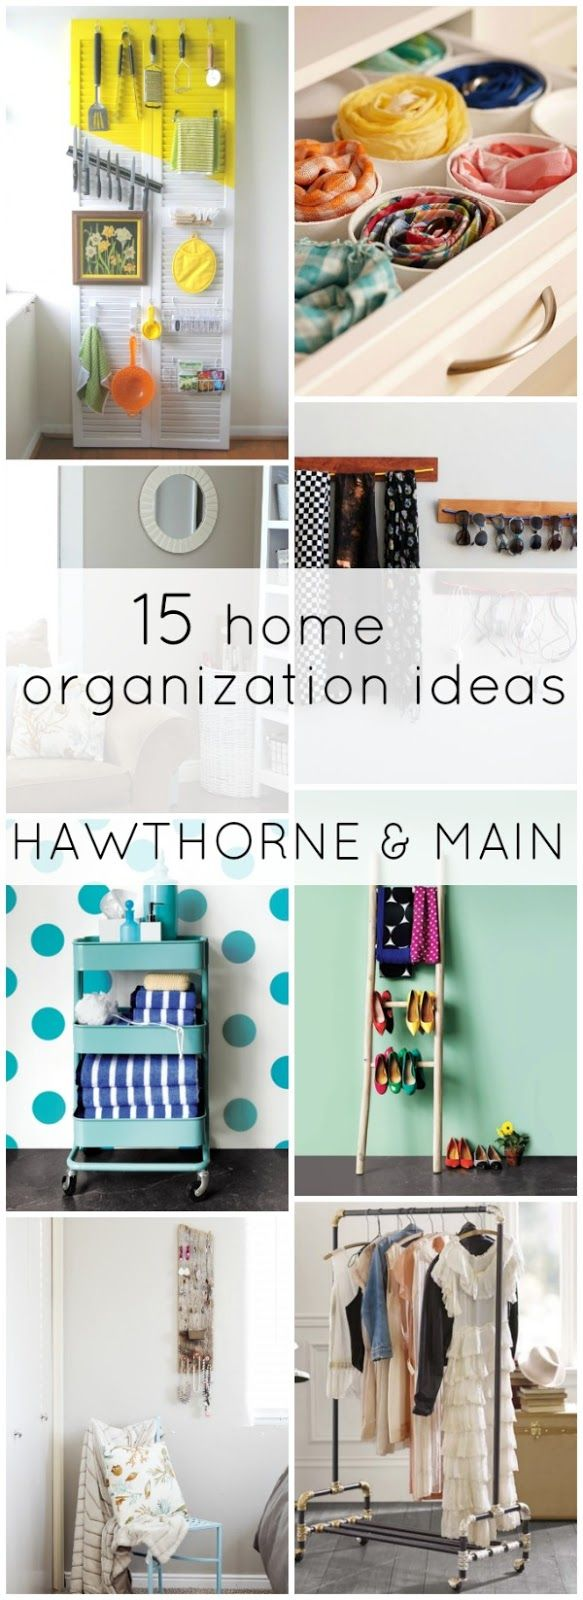 15 Home Organization Ideas that are sure to get you inspired to be more organize...